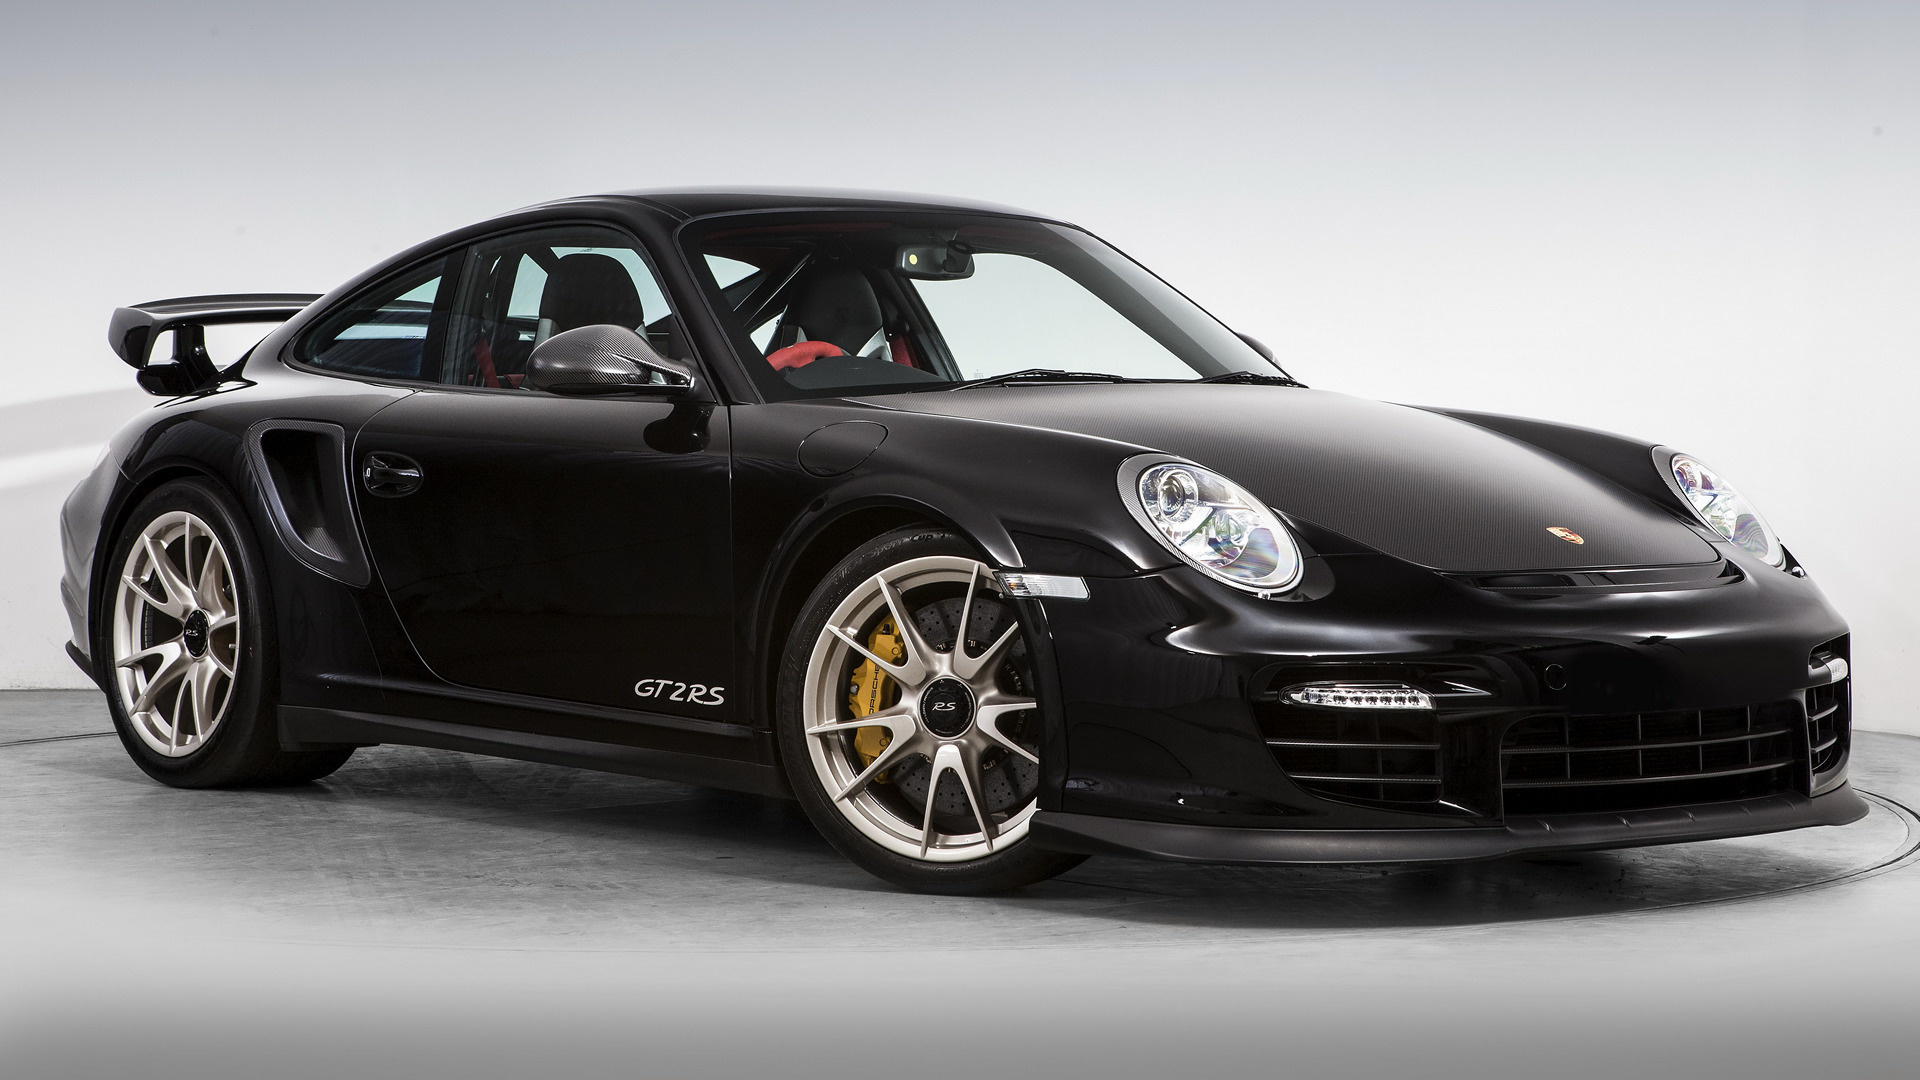 porsche 911 gt2 rs 2010 uk wallpapers and hd images car pixel